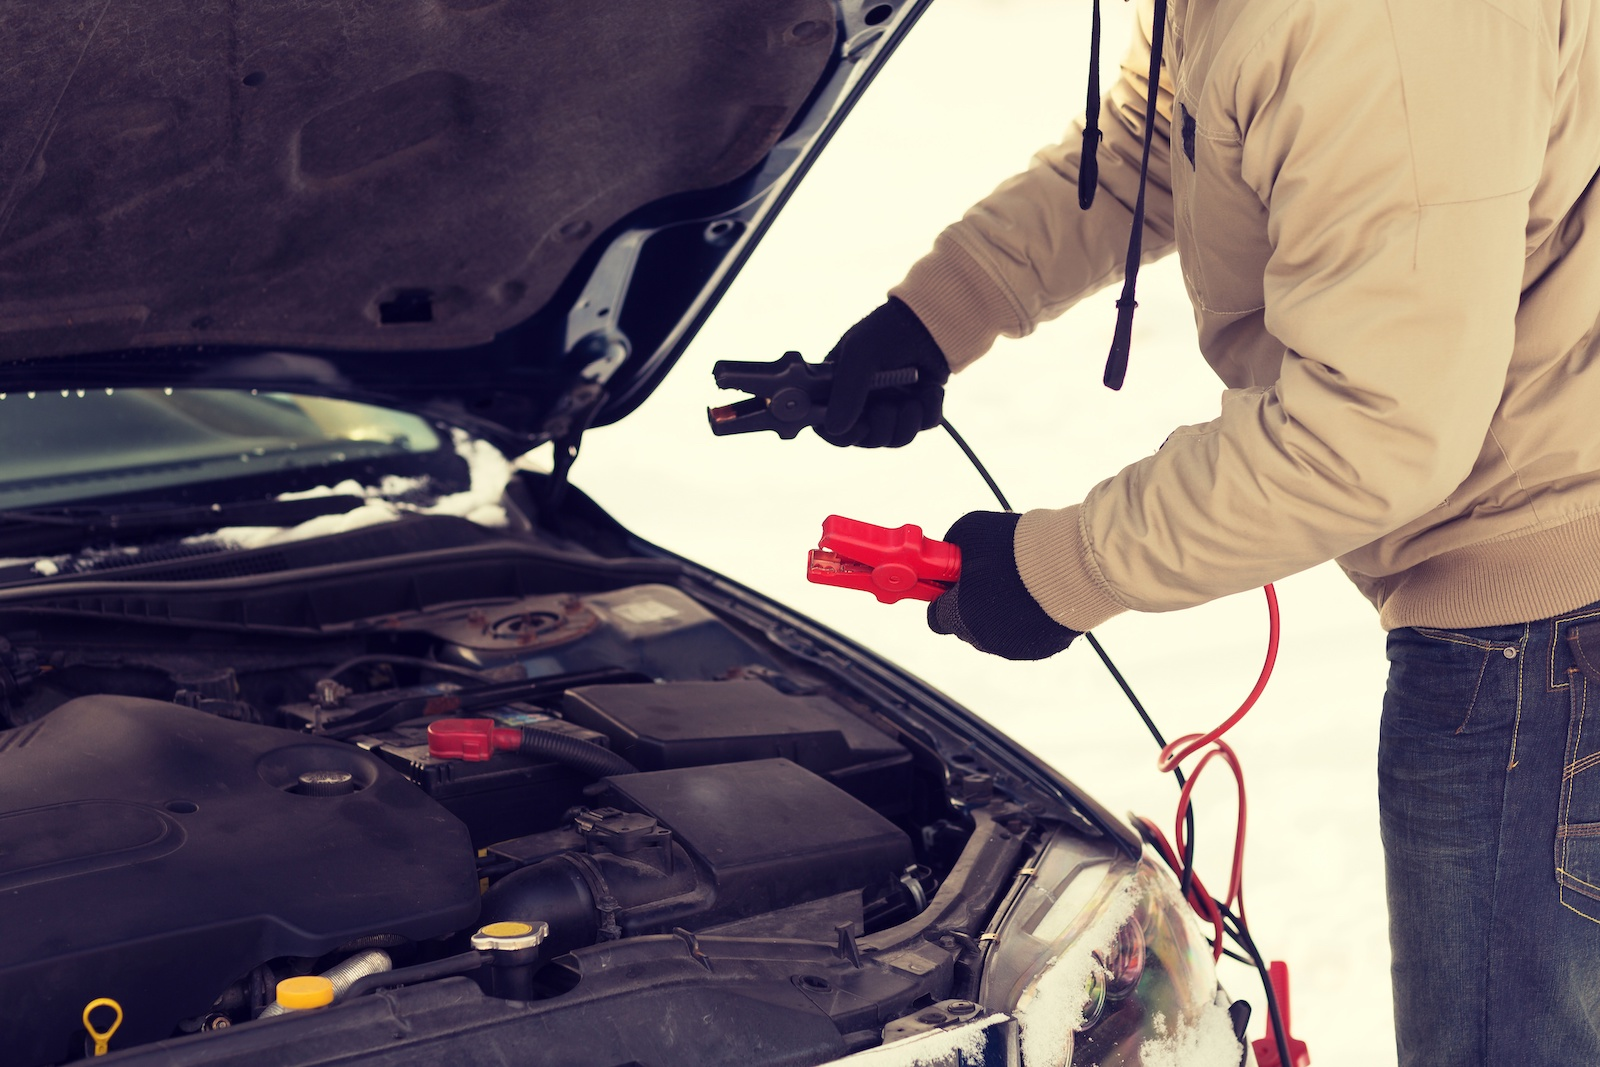 power portable jump starter being used to jumpstart a car